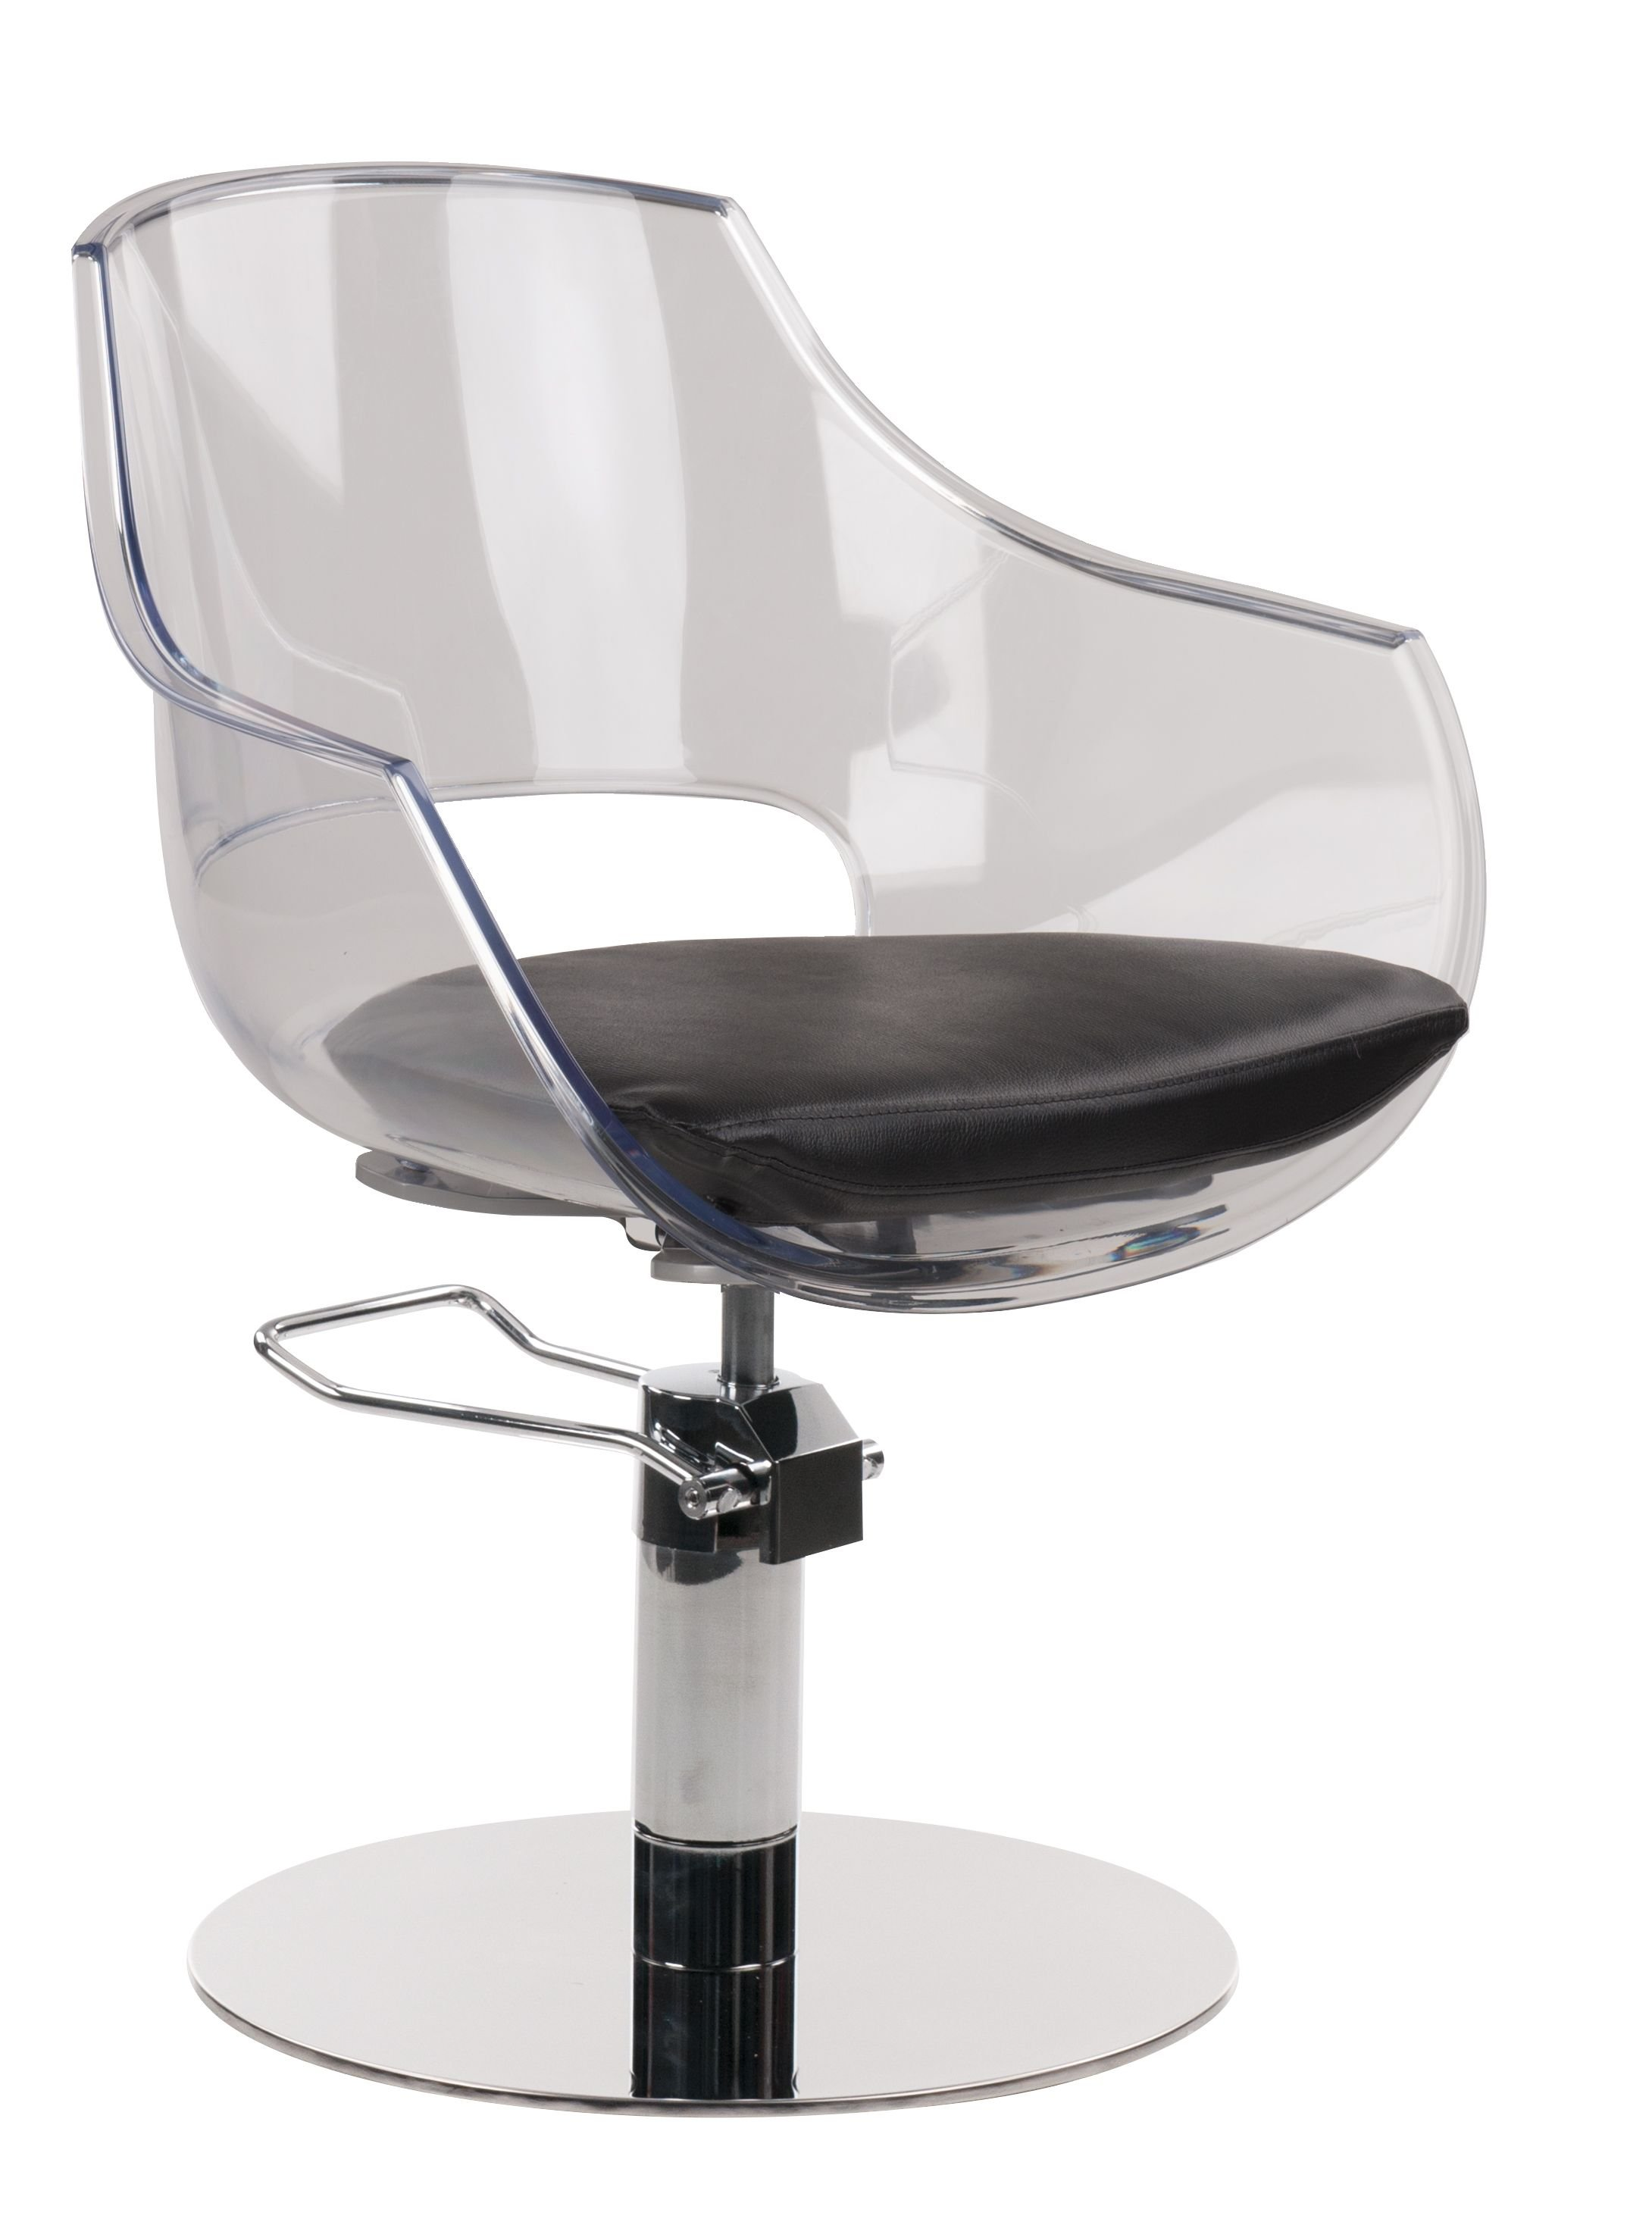 The Ghost Styling Chair by Salon Interiors Inc.